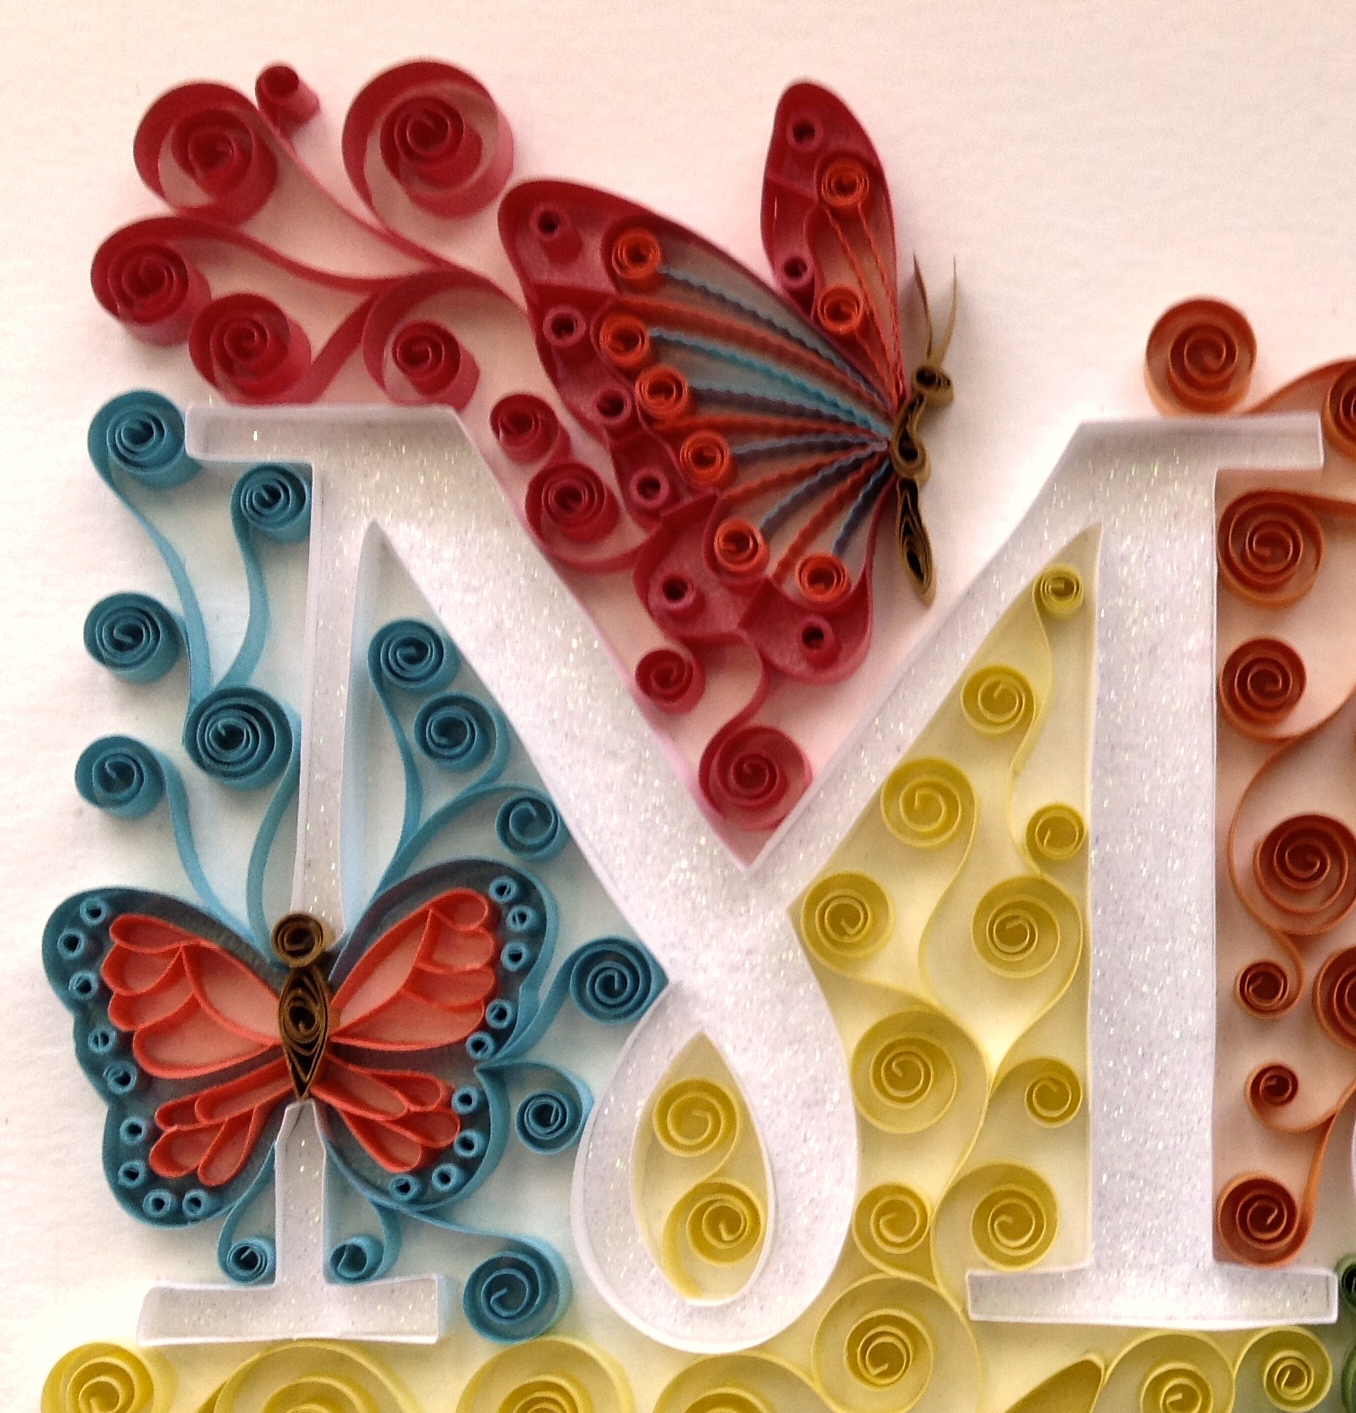 Halcyon Creative Gifts - Quilling and Crafts for Quilling Butterfly Tutorial  45jwn